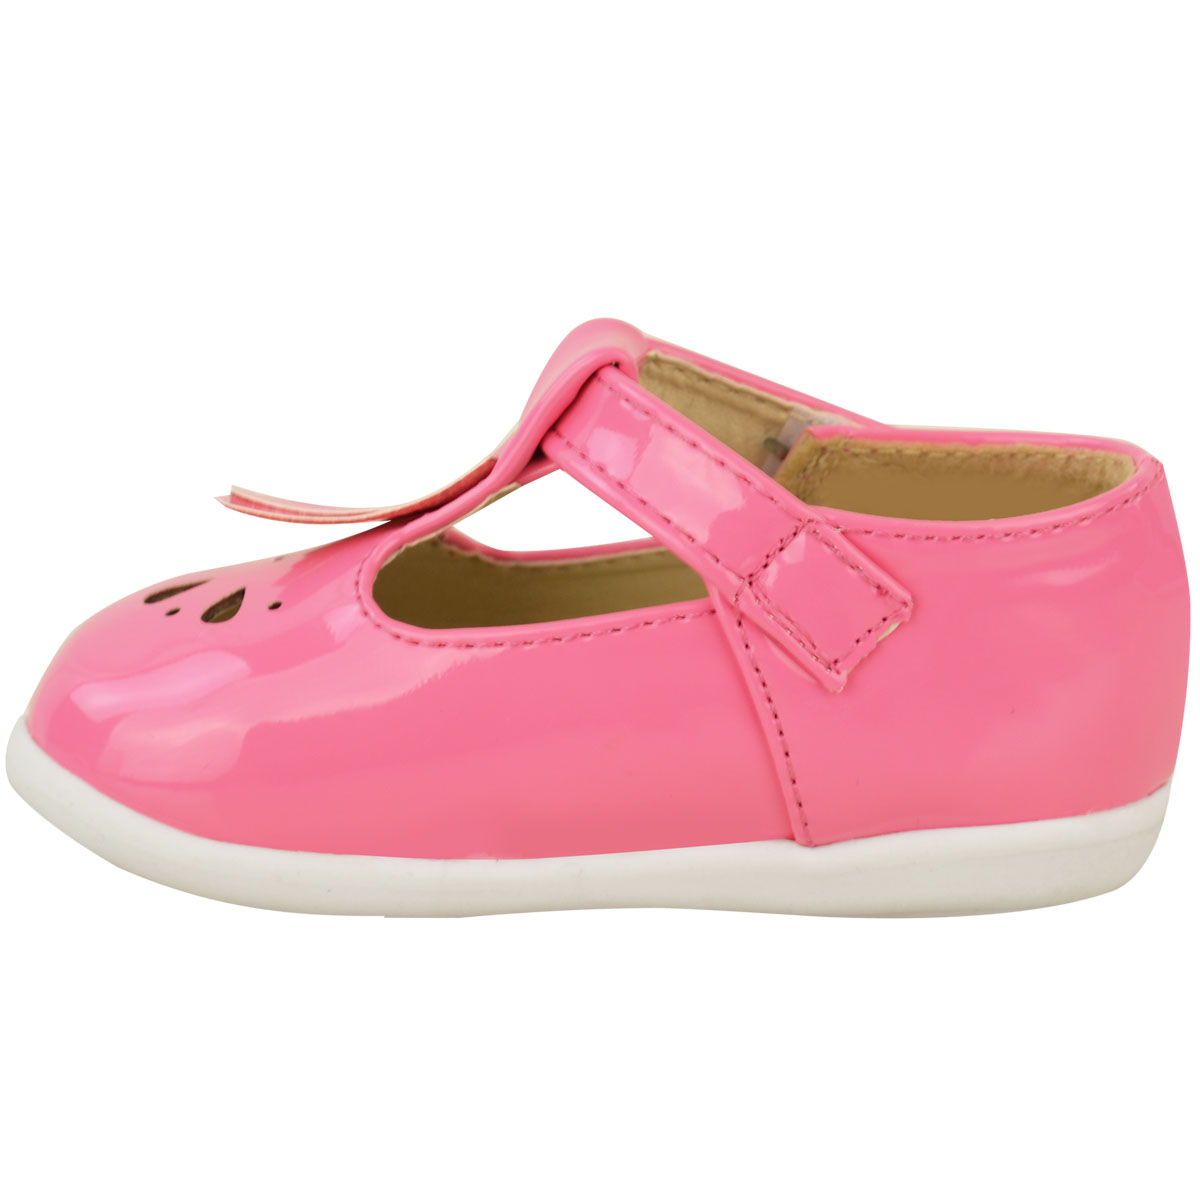 flat shoes for girls - photo #21